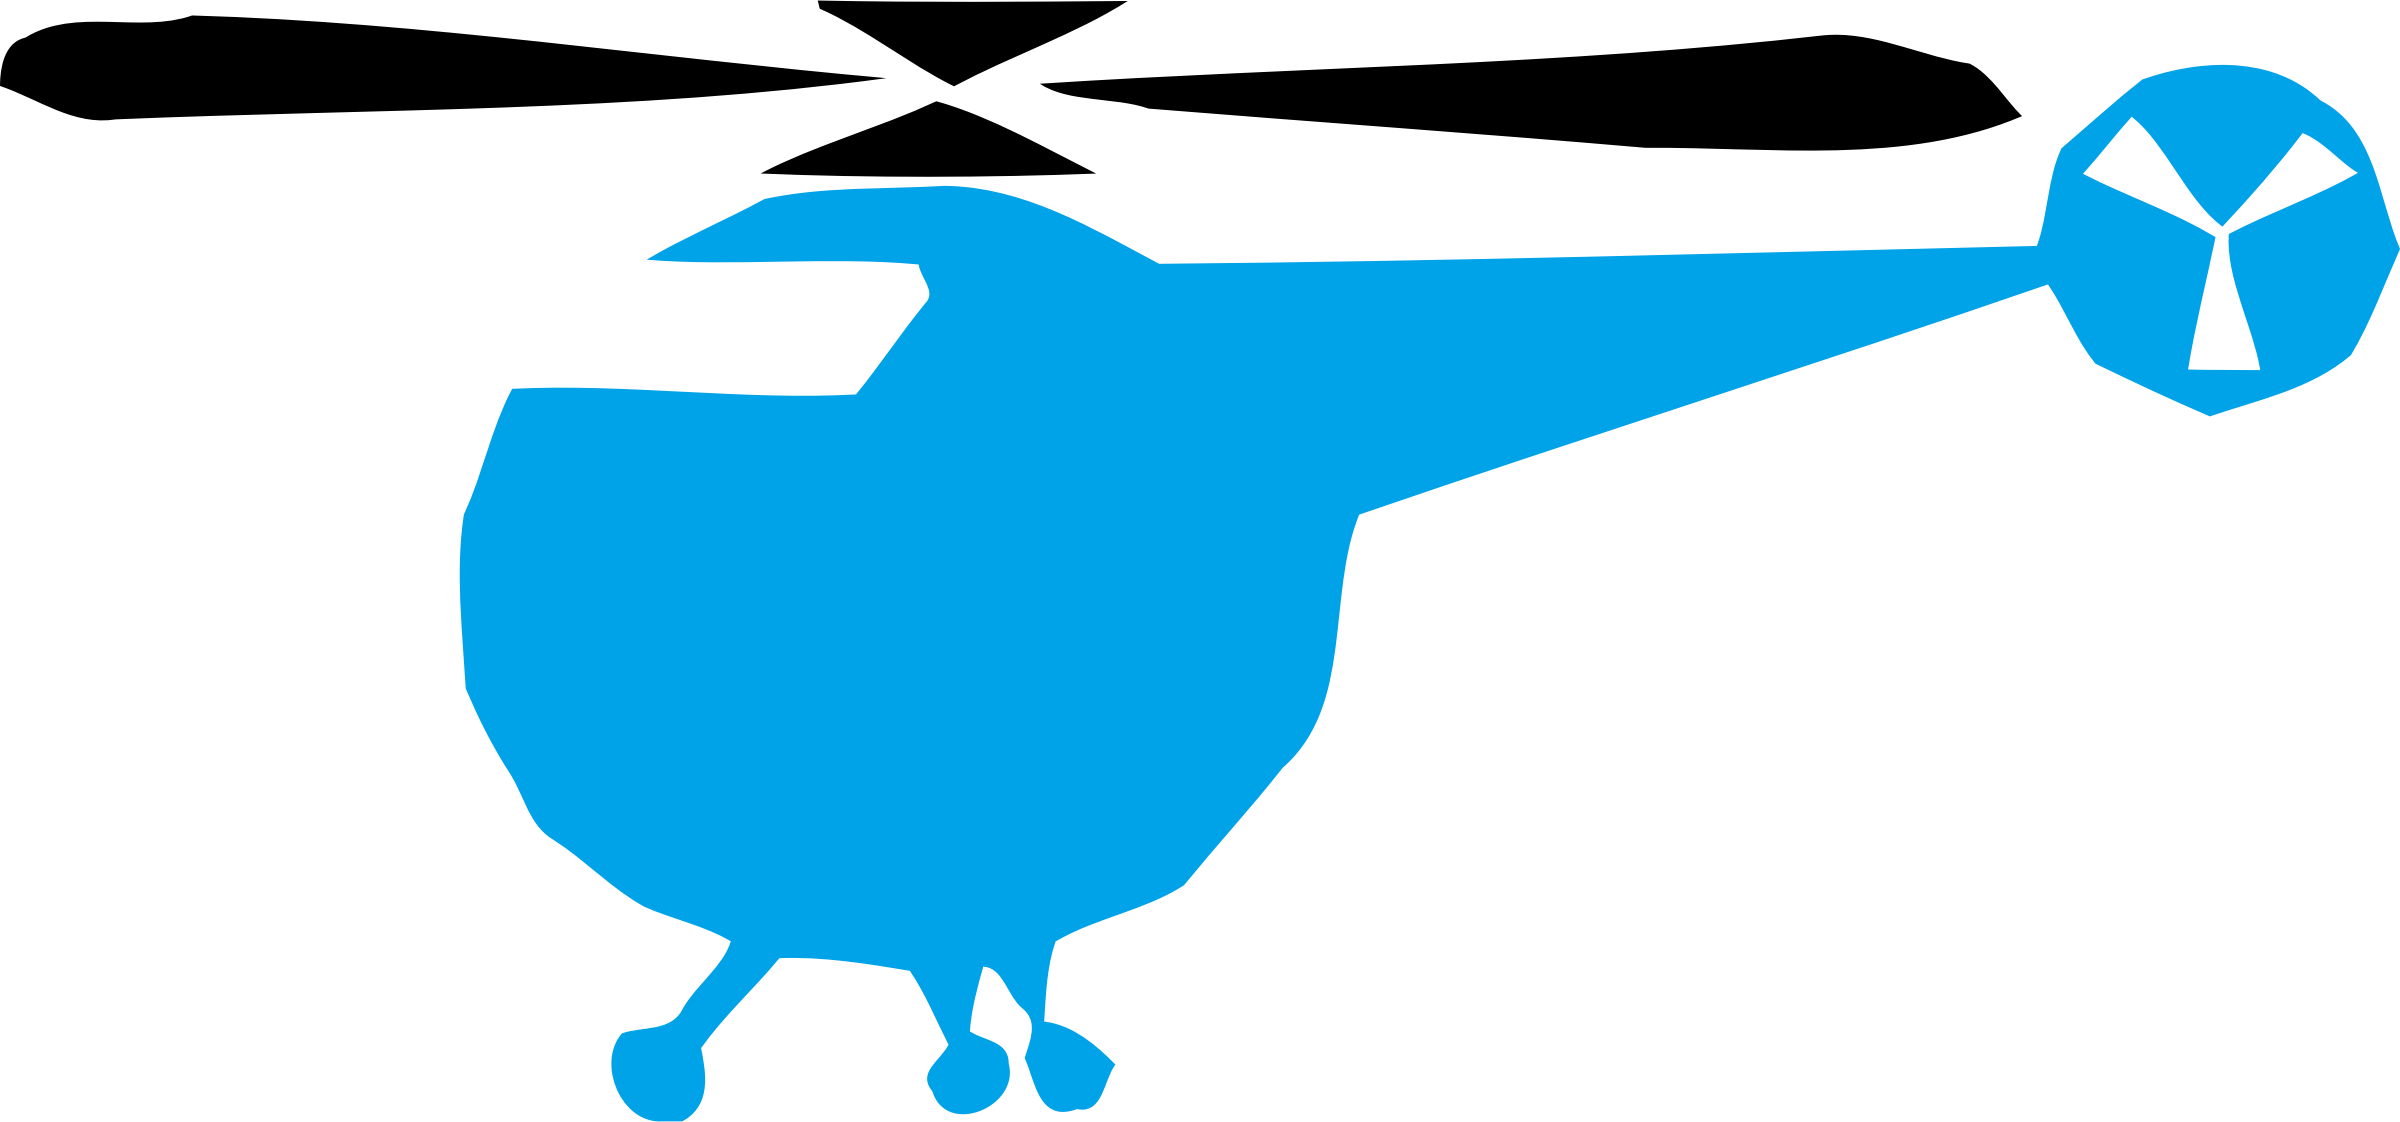 Helicopter vectorized by Firkin